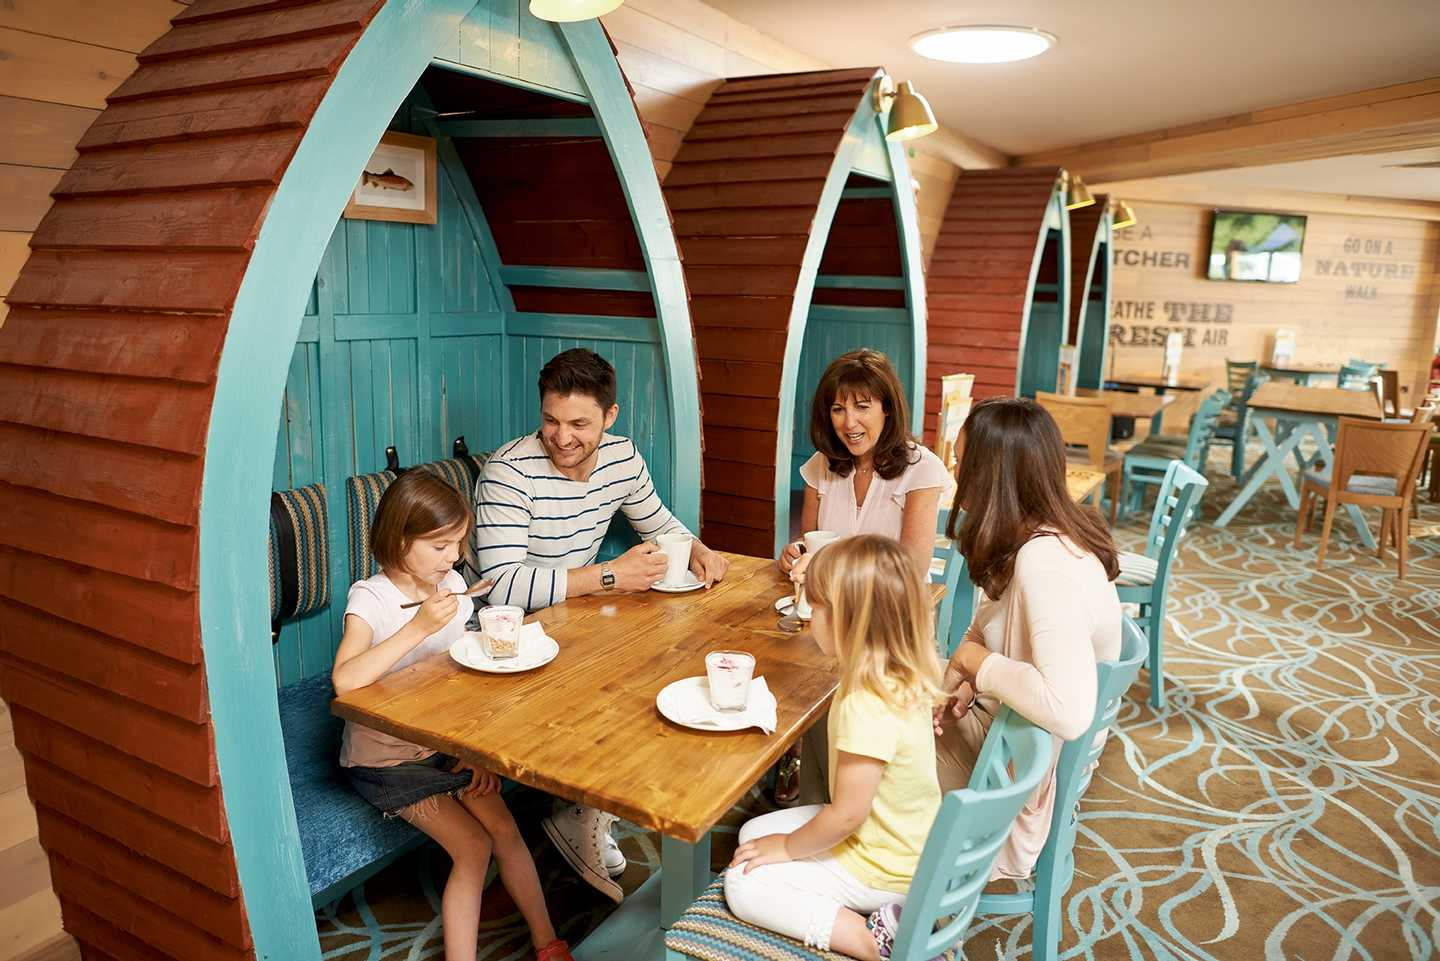 Family eating a meal in the Boathouse bar and restaurant